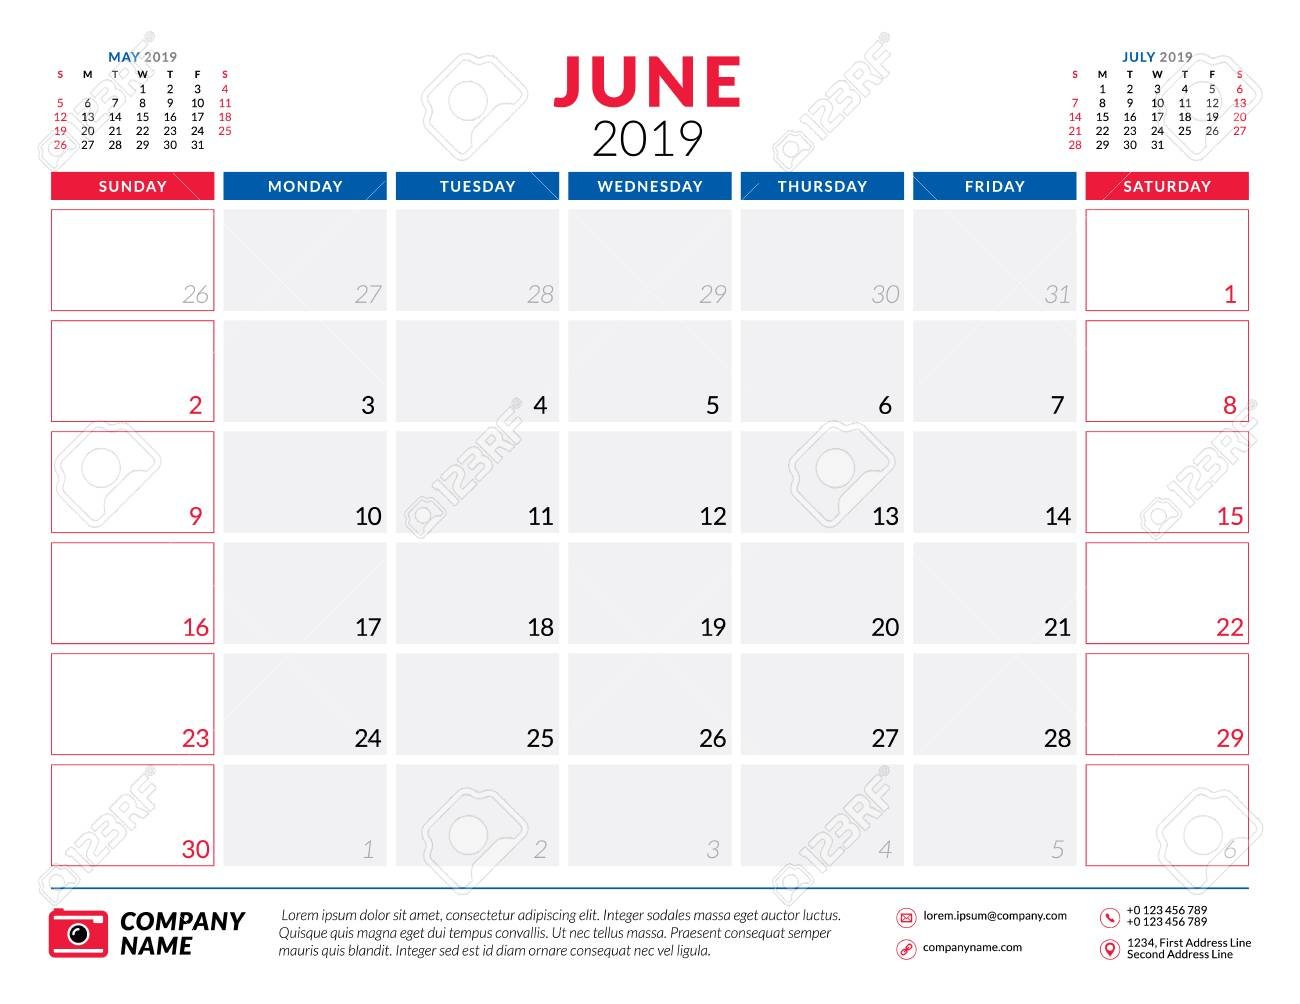 June 2019. Calendar Planner Stationery Design Template. Vector June 7 2019 Calendar